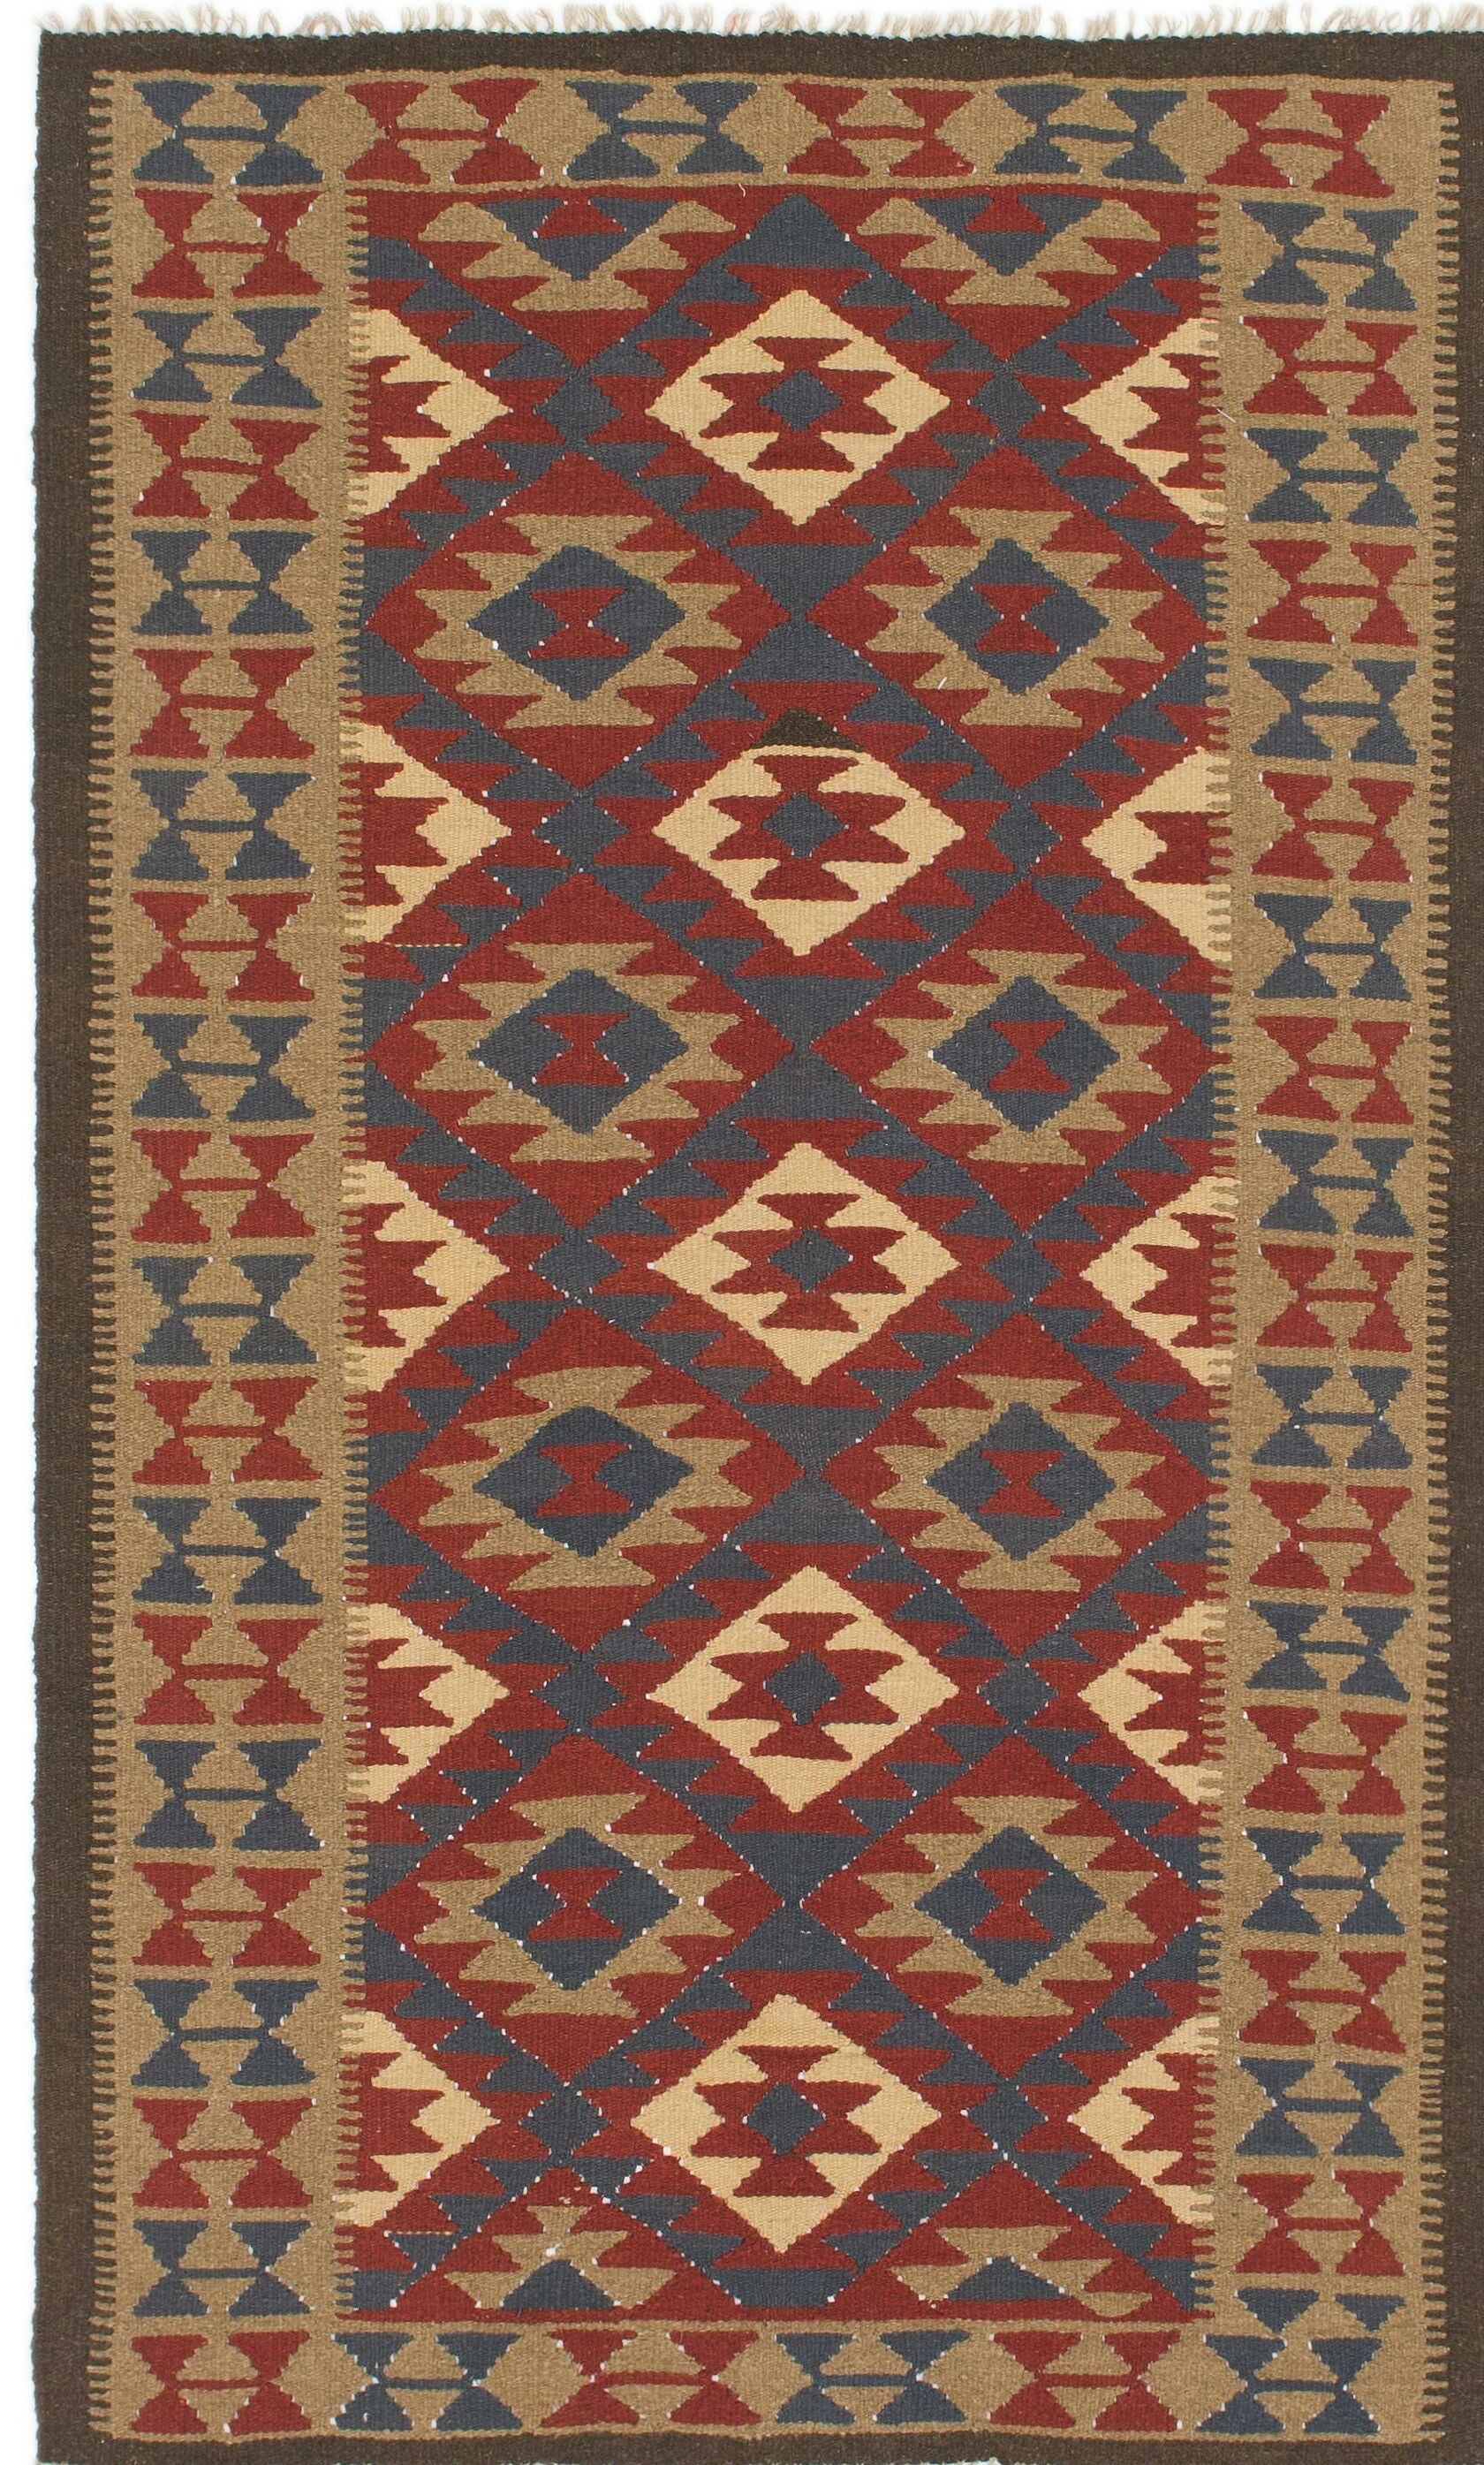 One-of-a-Kind Lorain Hand-Knotted Wool 4'9